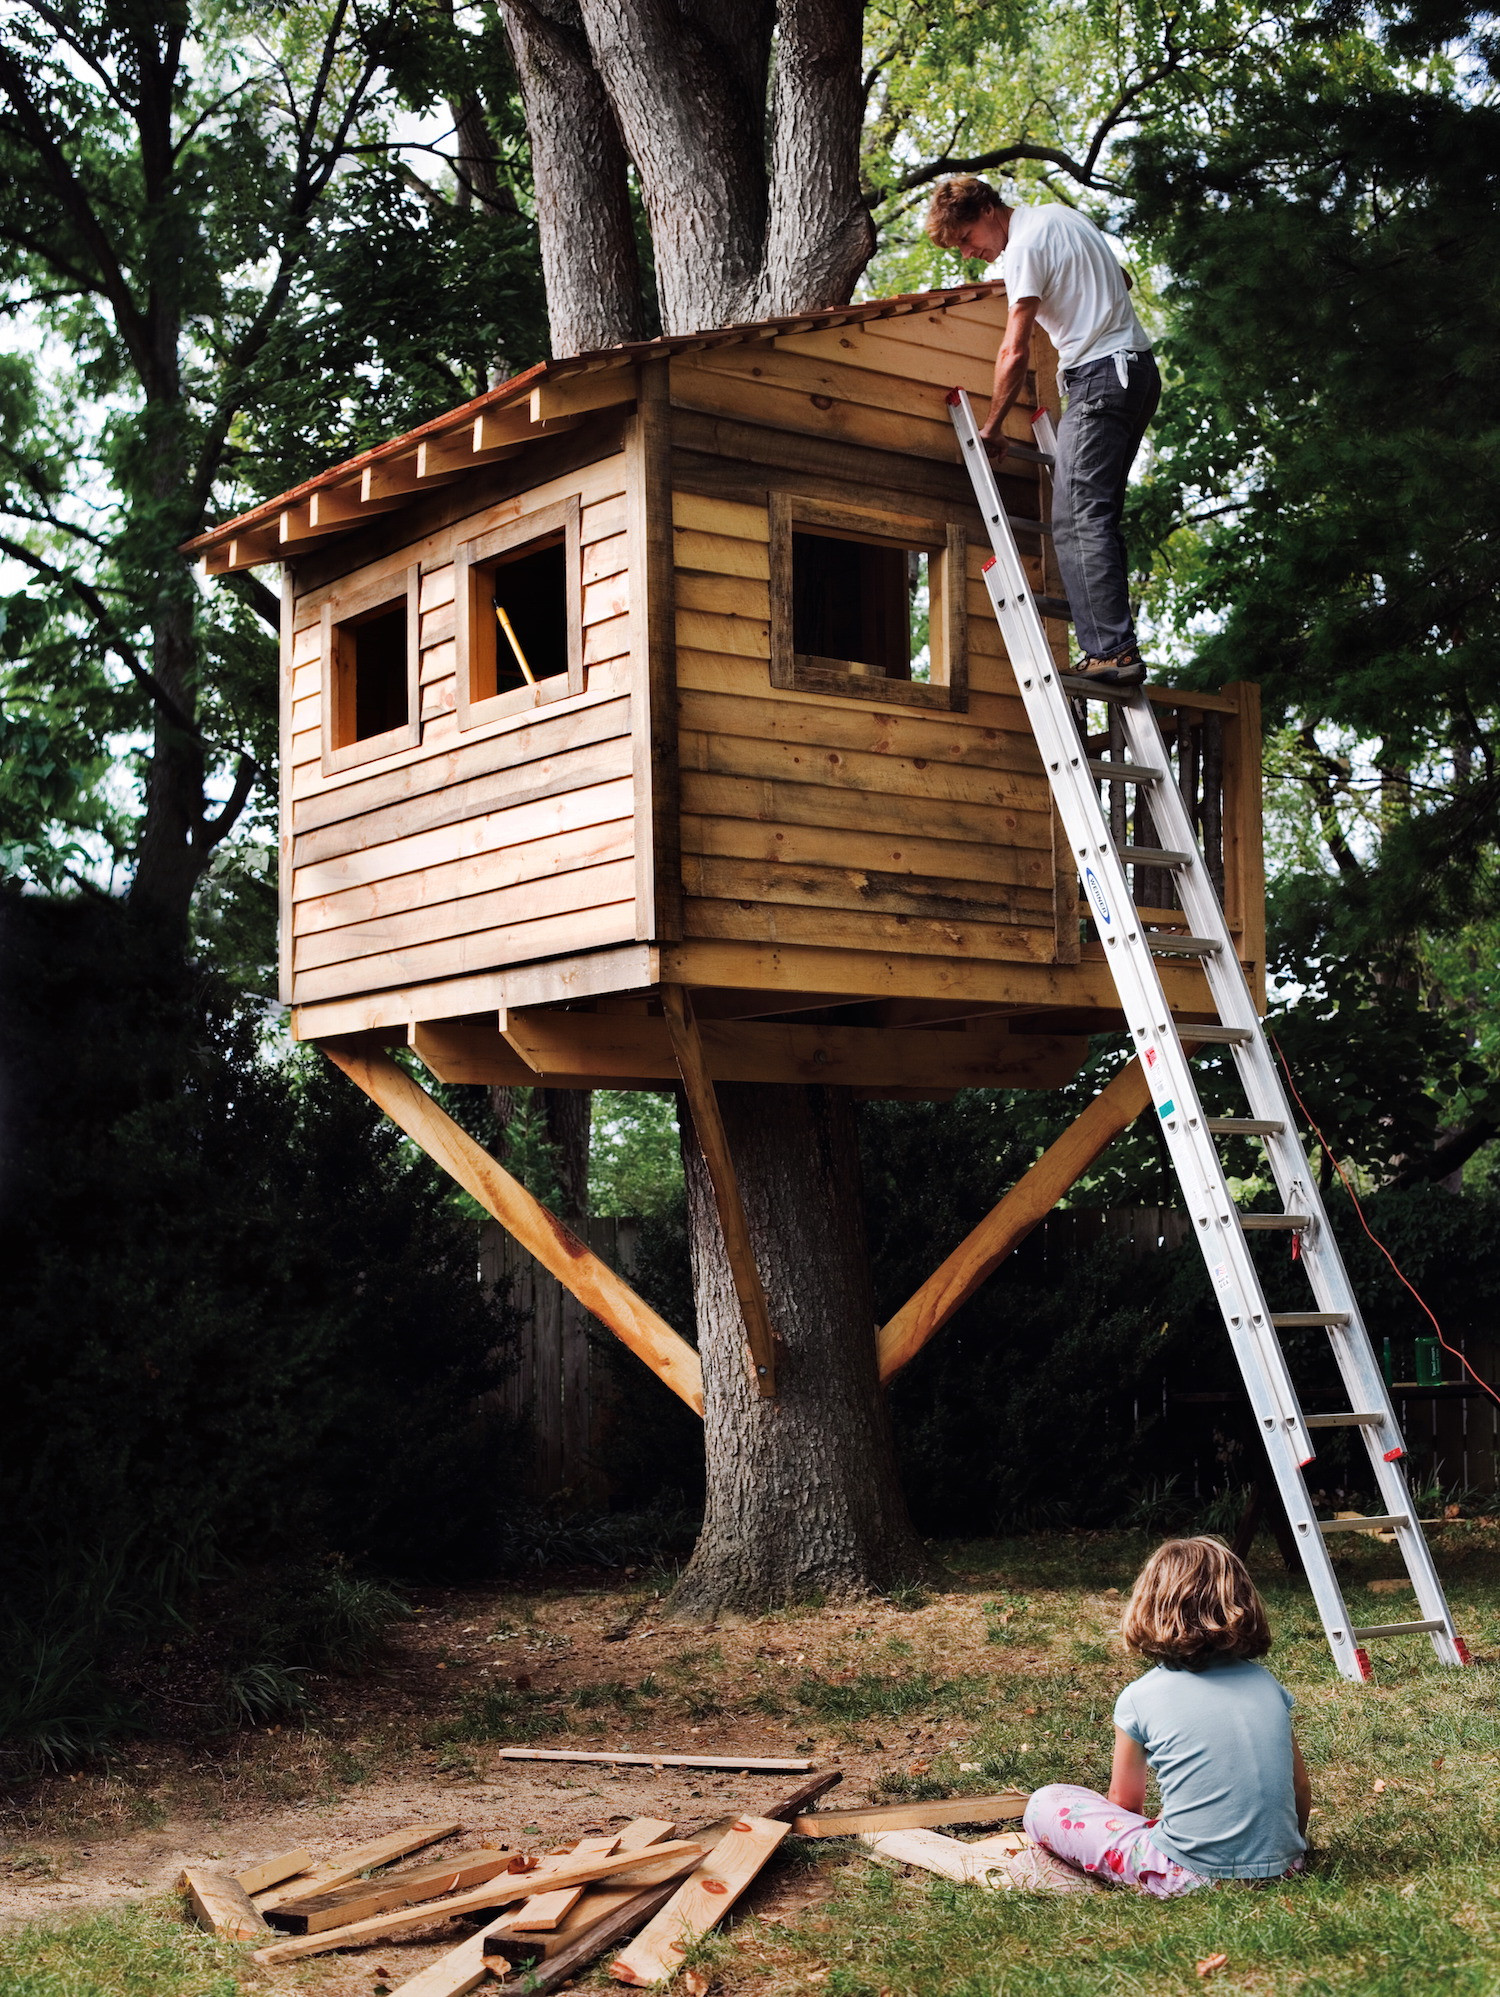 Best ideas about DIY Treehouse Plans Free . Save or Pin How to Build a Treehouse for Your Backyard DIY Tree Now.